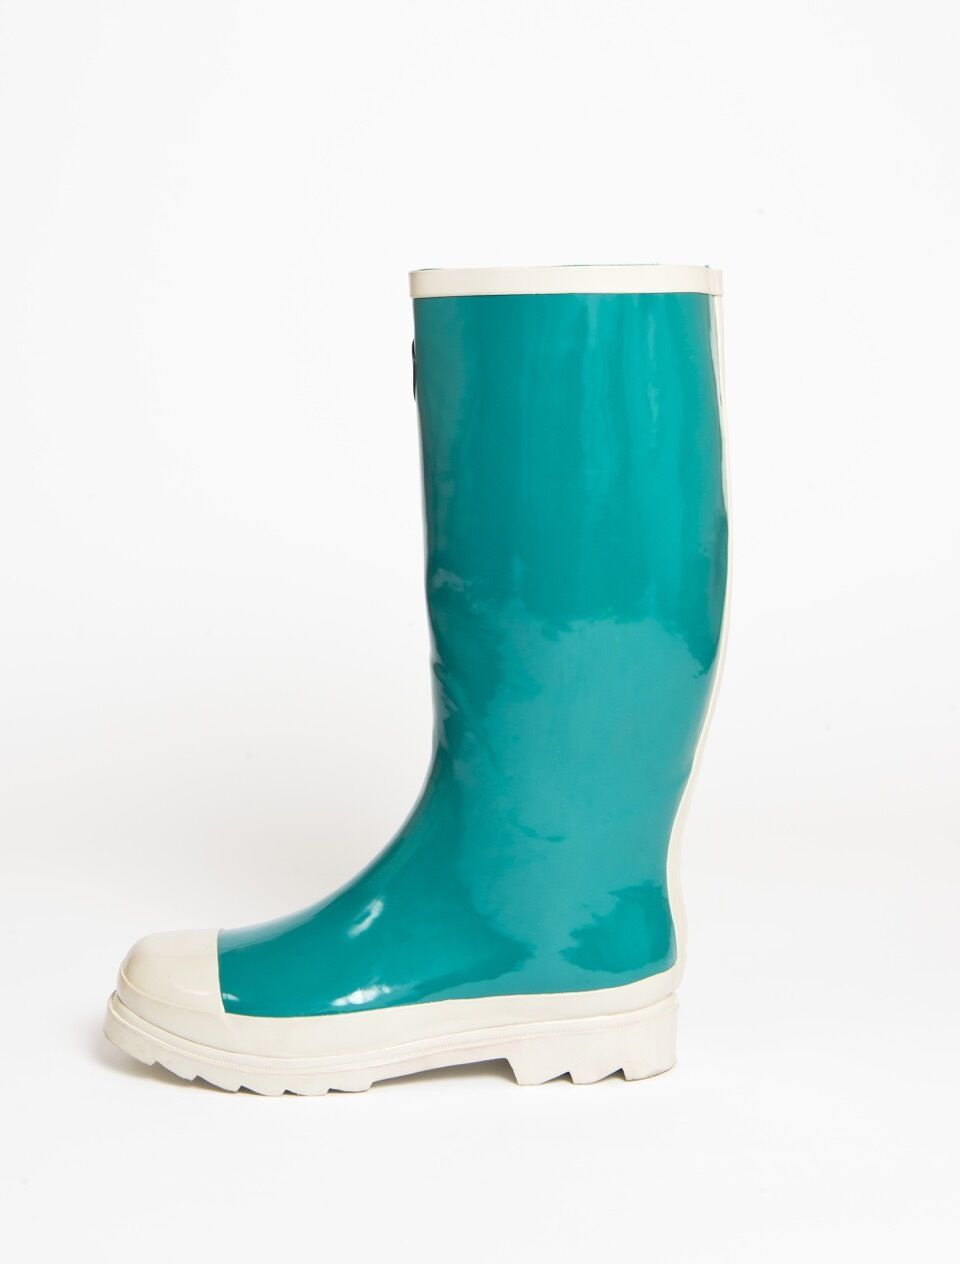 müd Designer Wellington Boots Slim - Teal Green - Slim Boots fit 0559e1